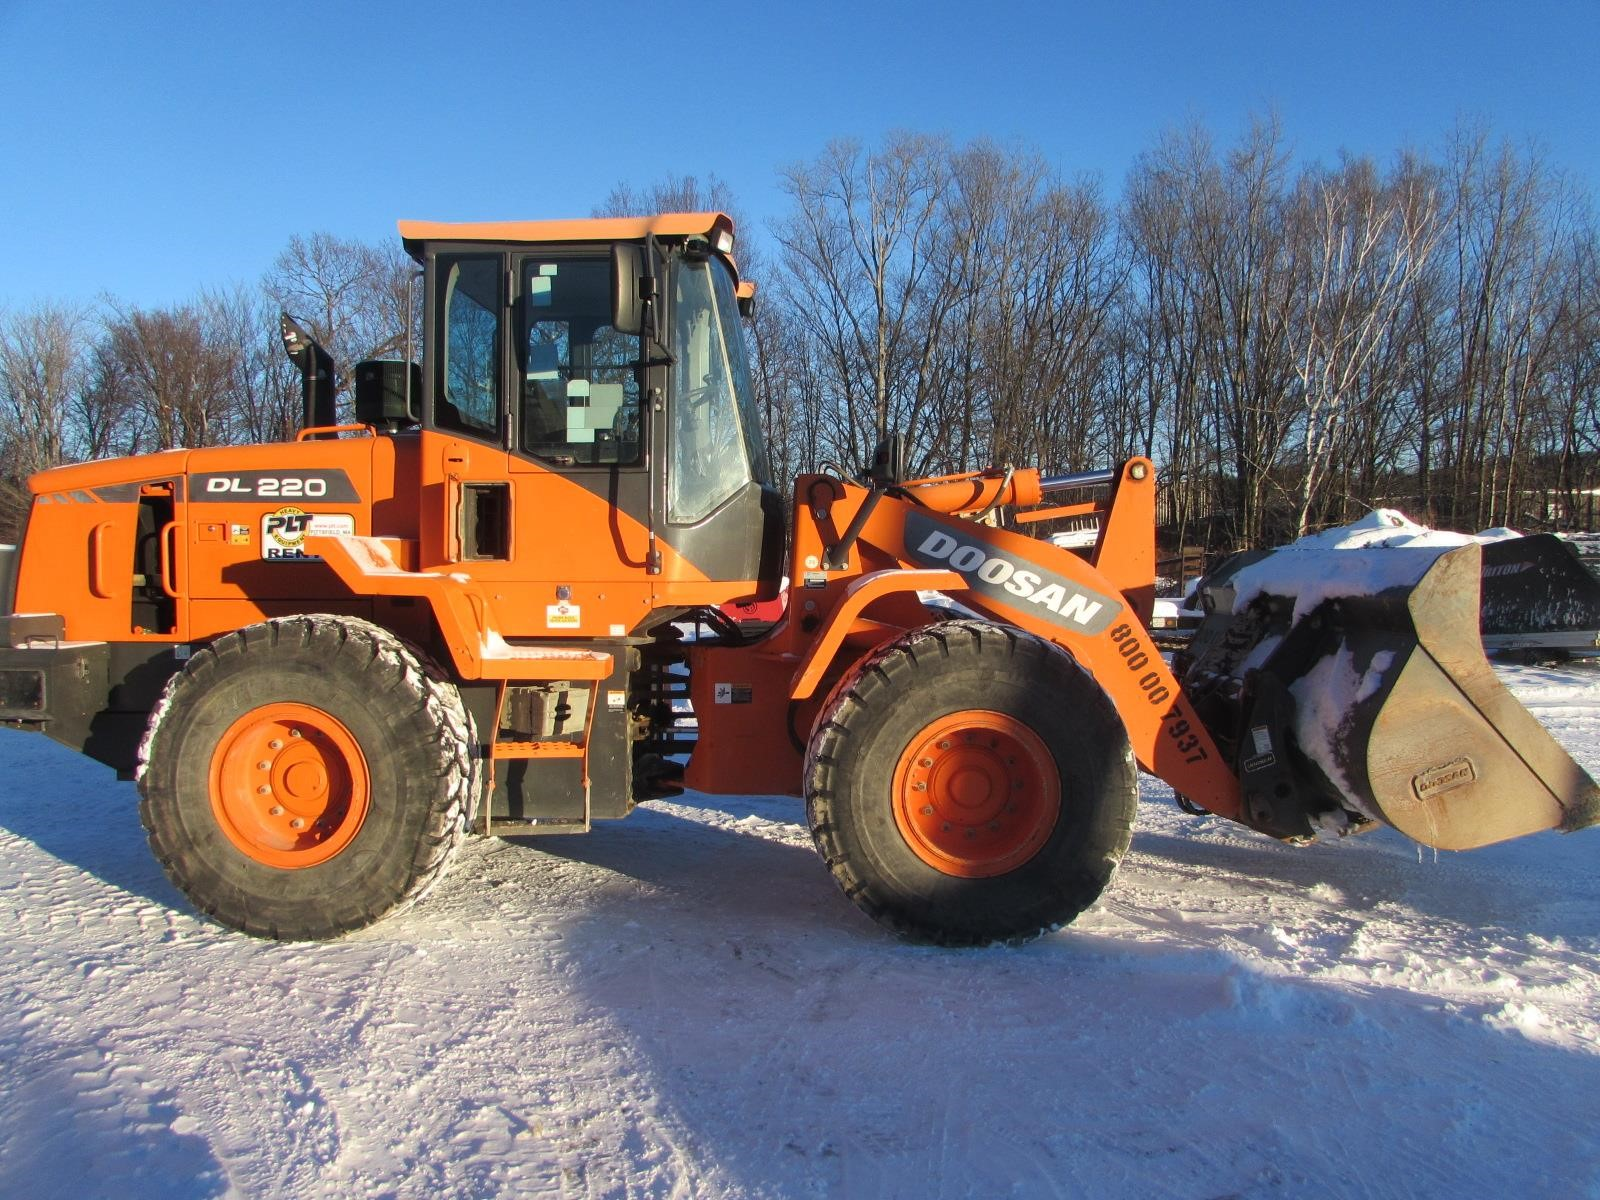 2013 Doosan DL220 Wheel Loader